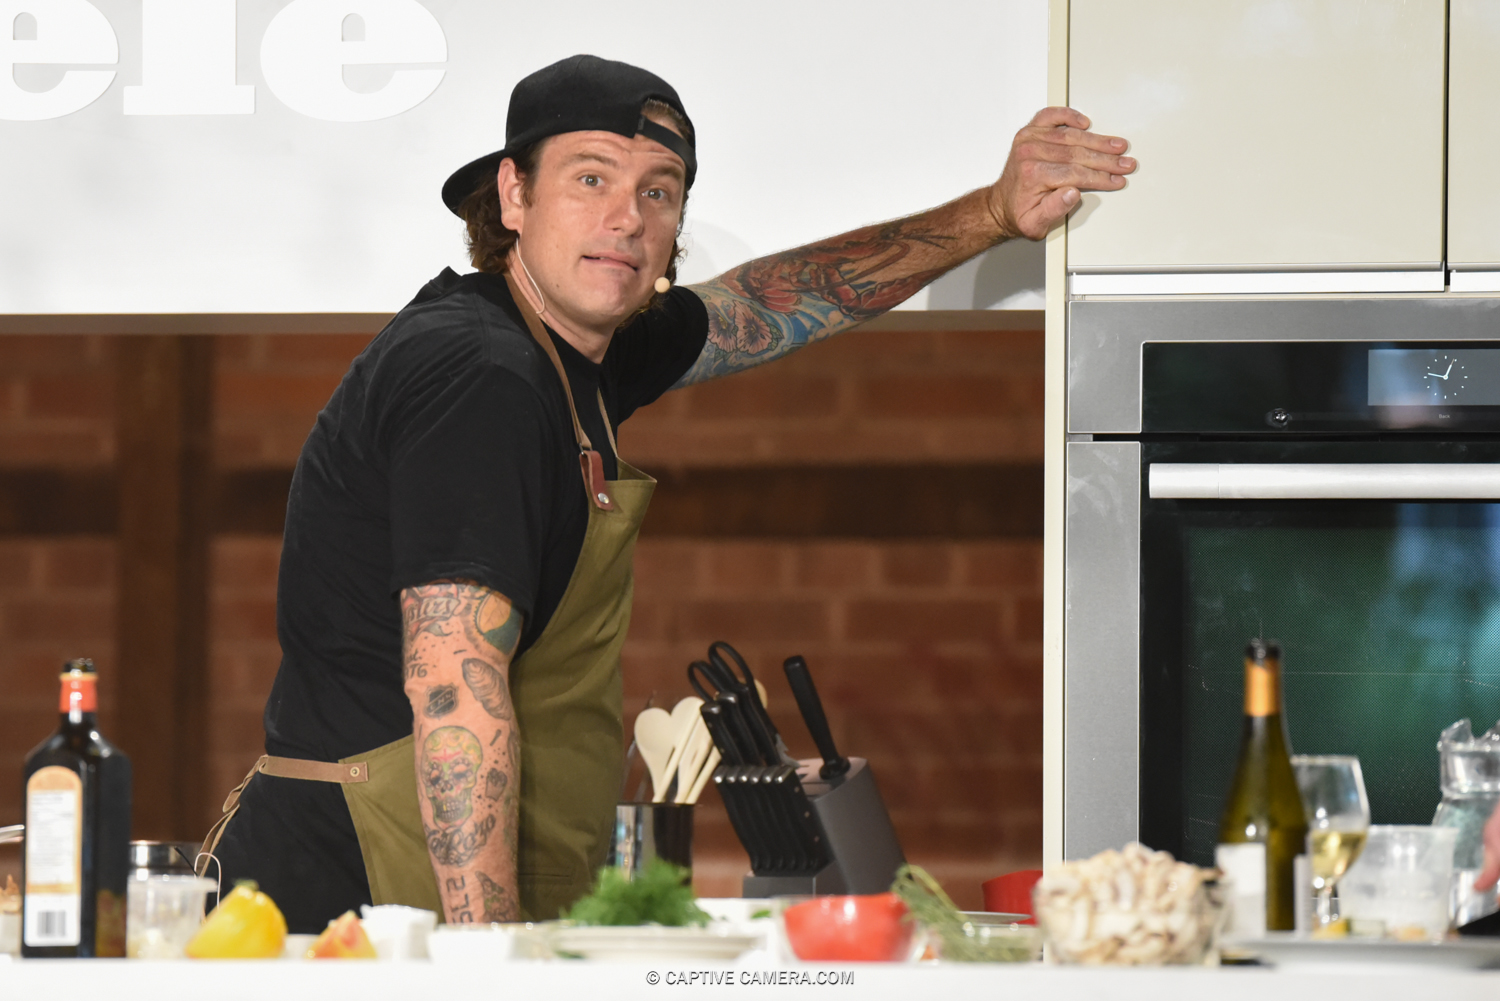 CANADIAN CELEBRITY CHEF CHUCK HUGHES AT TORONTO FOOD AND WINE FESTIVAL